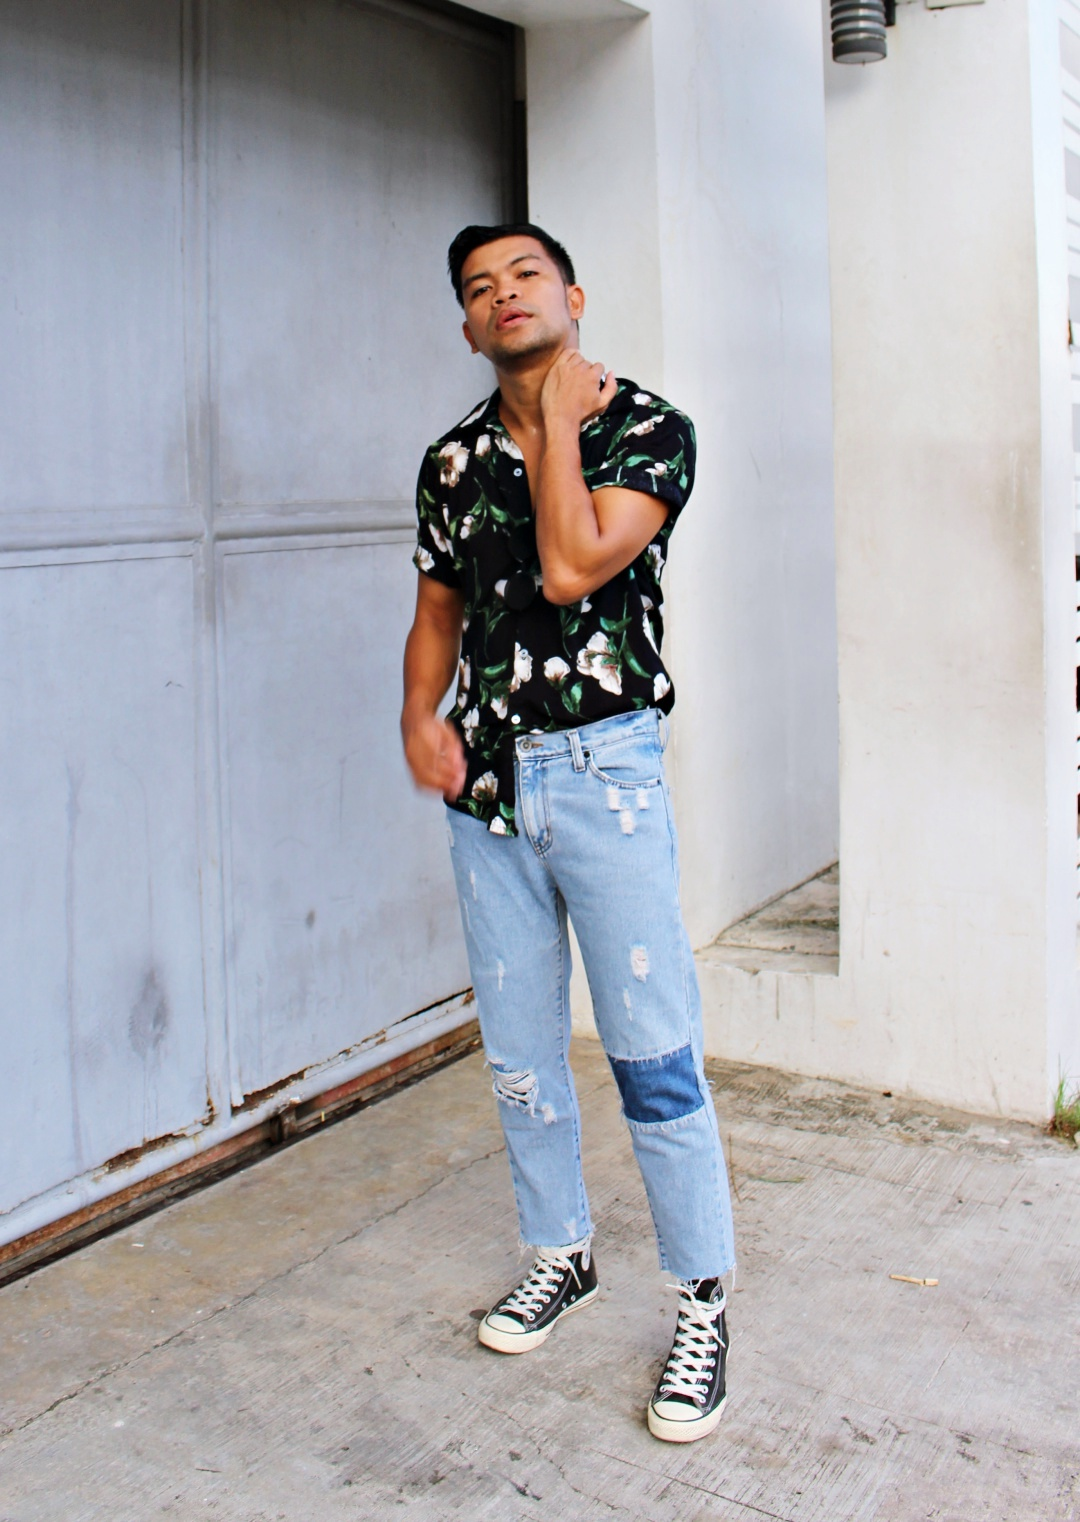 FASHION-BLOGGERS-CEBU-ALMOSTABLOGGER-MEN.jpg